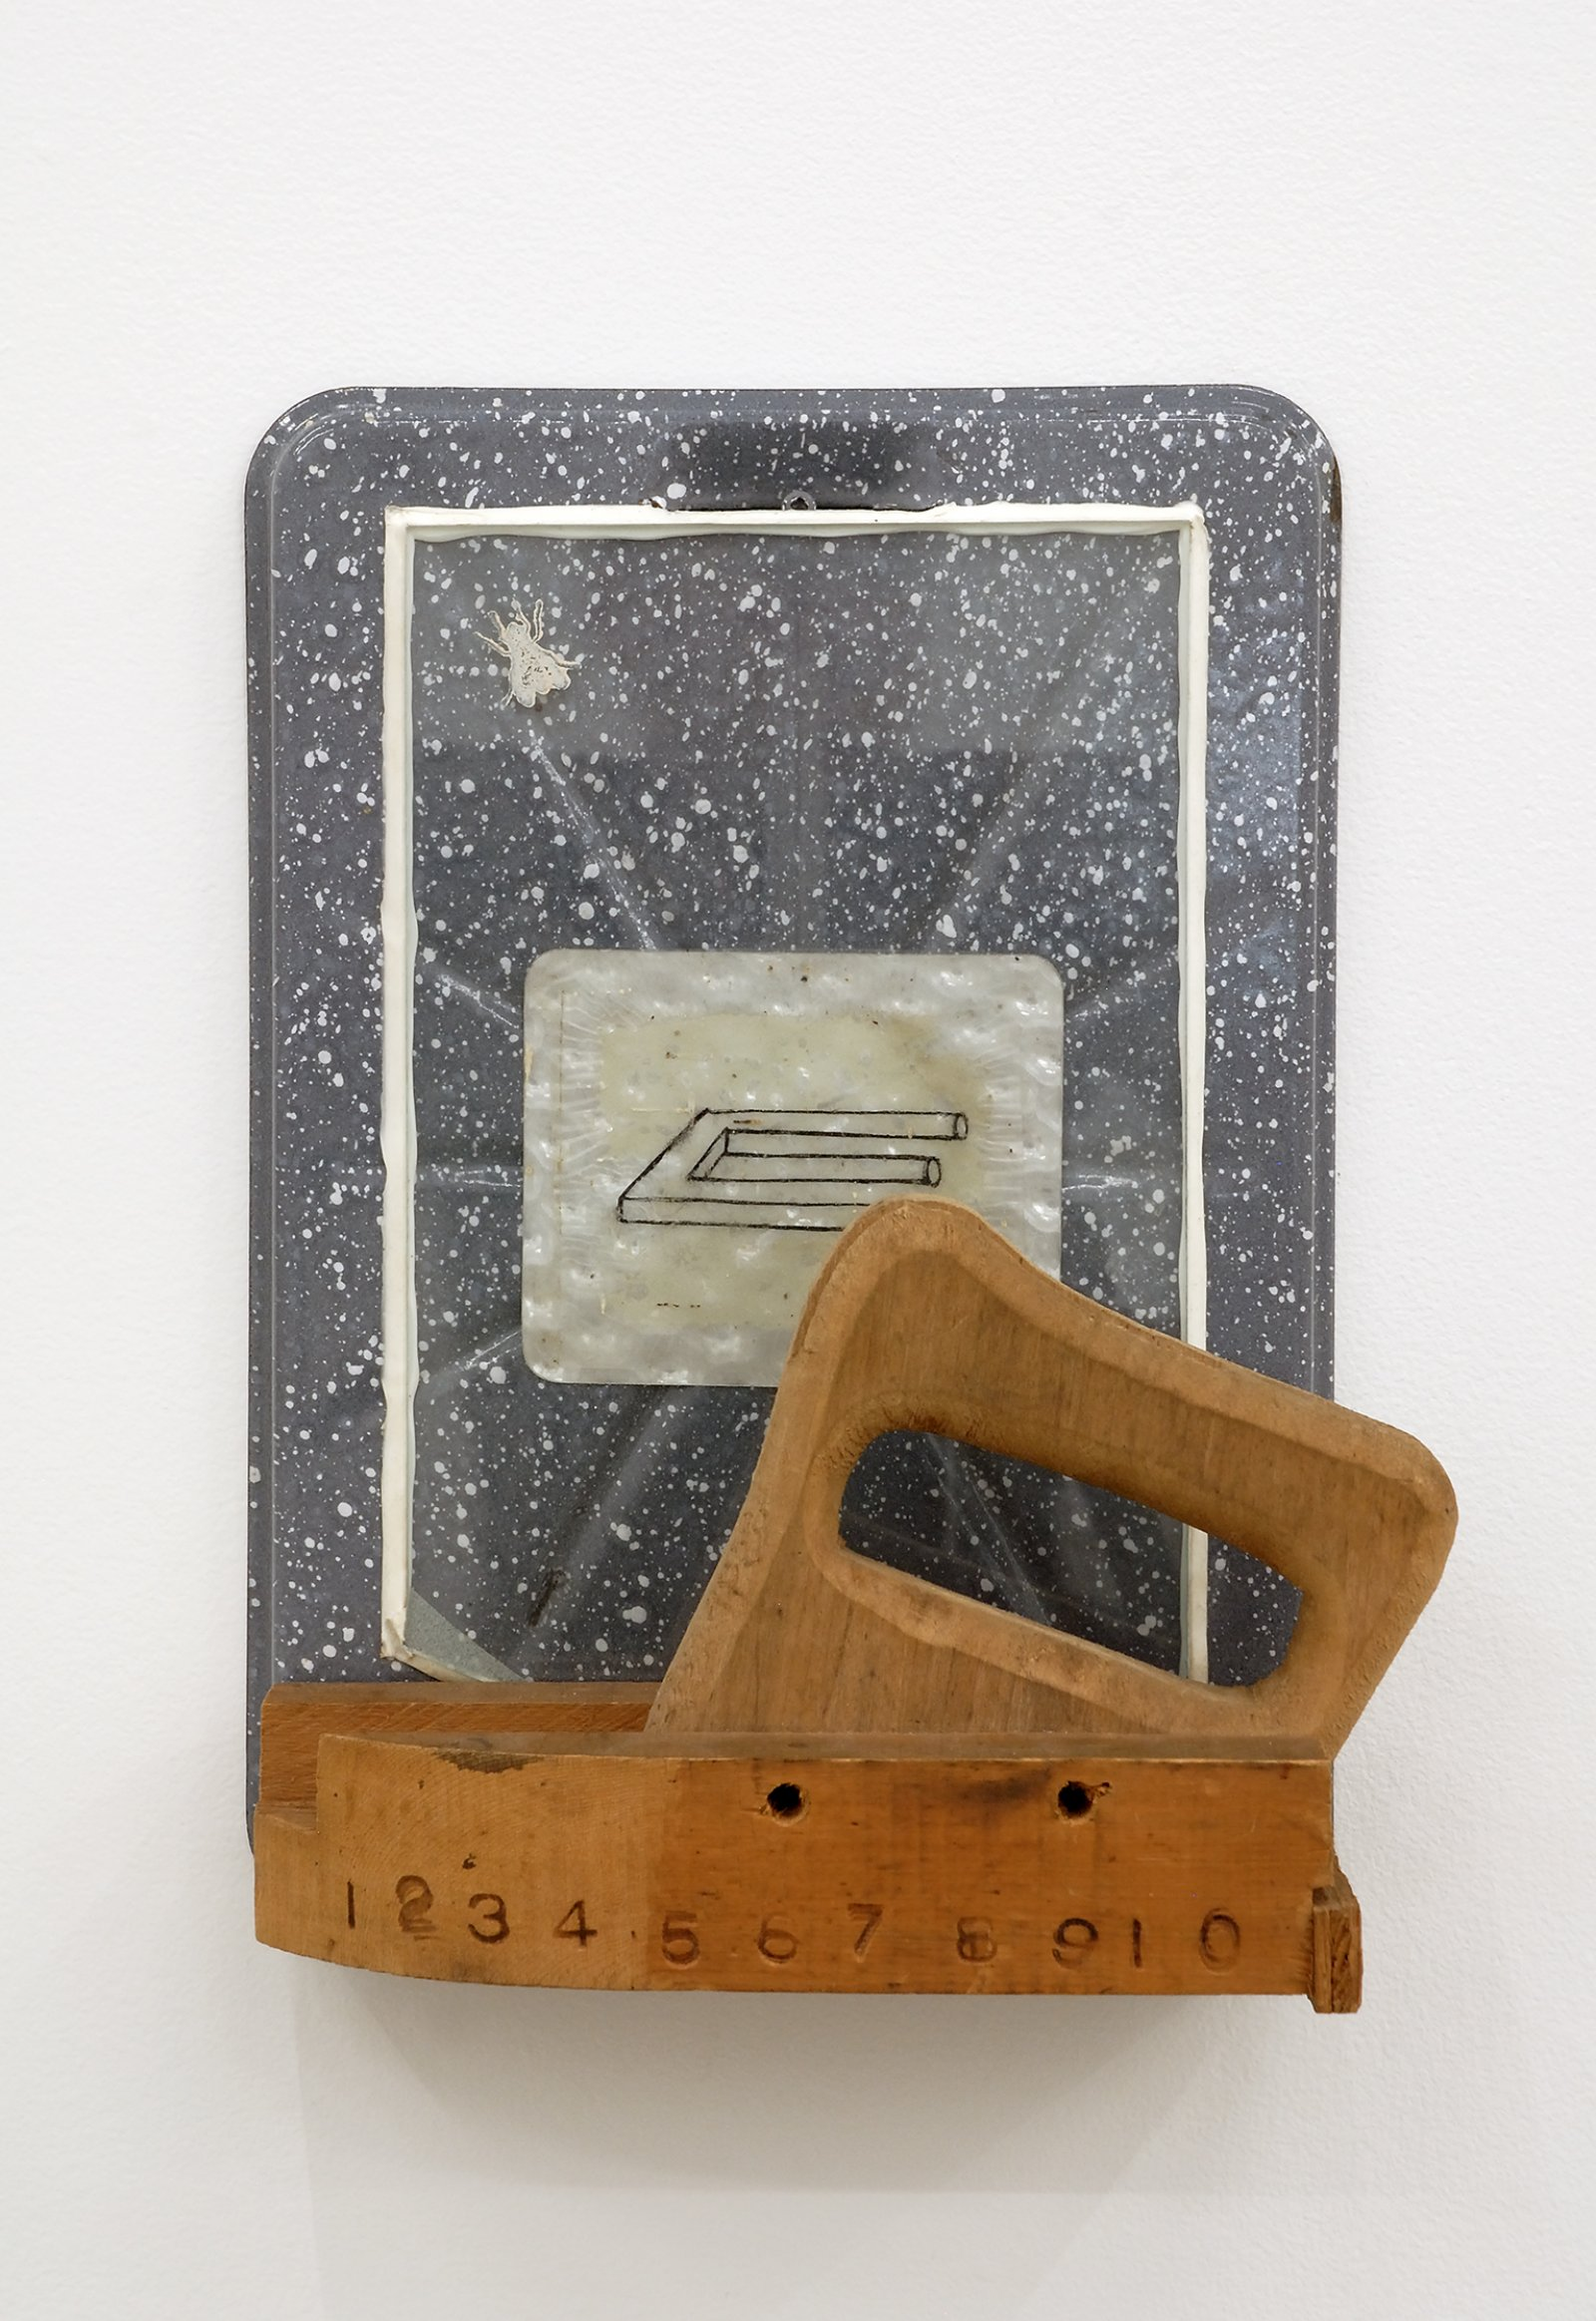 Jerry Pethick, Proximity Device, 1990, enamelled steel broiler, ink drawing on devil's tuning fork on rolux, wood, fly stamp, 13 x 10 x 4 in. (33 x 25 x 10 cm)   by Jerry Pethick